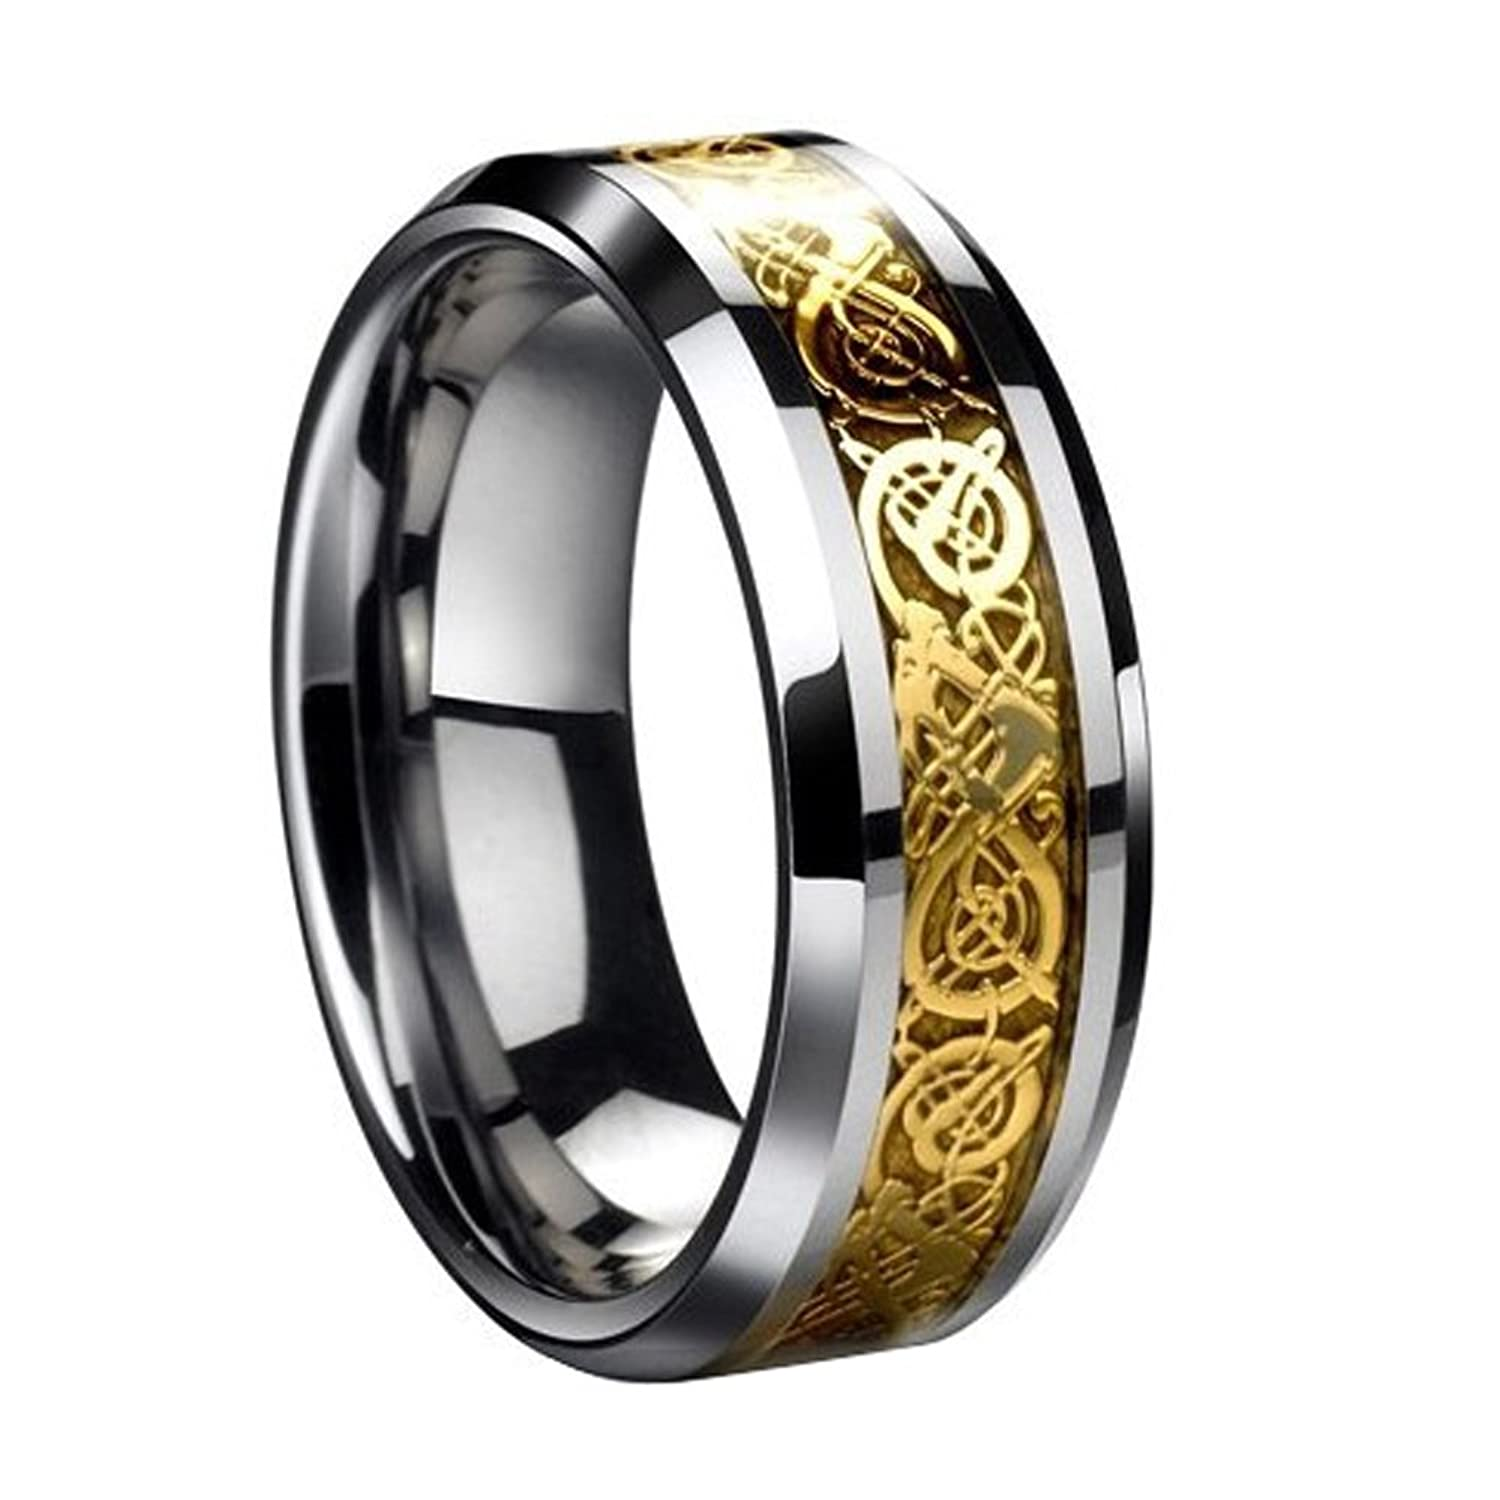 dragon scale dragon pattern beveled edges celtic rings jewelry